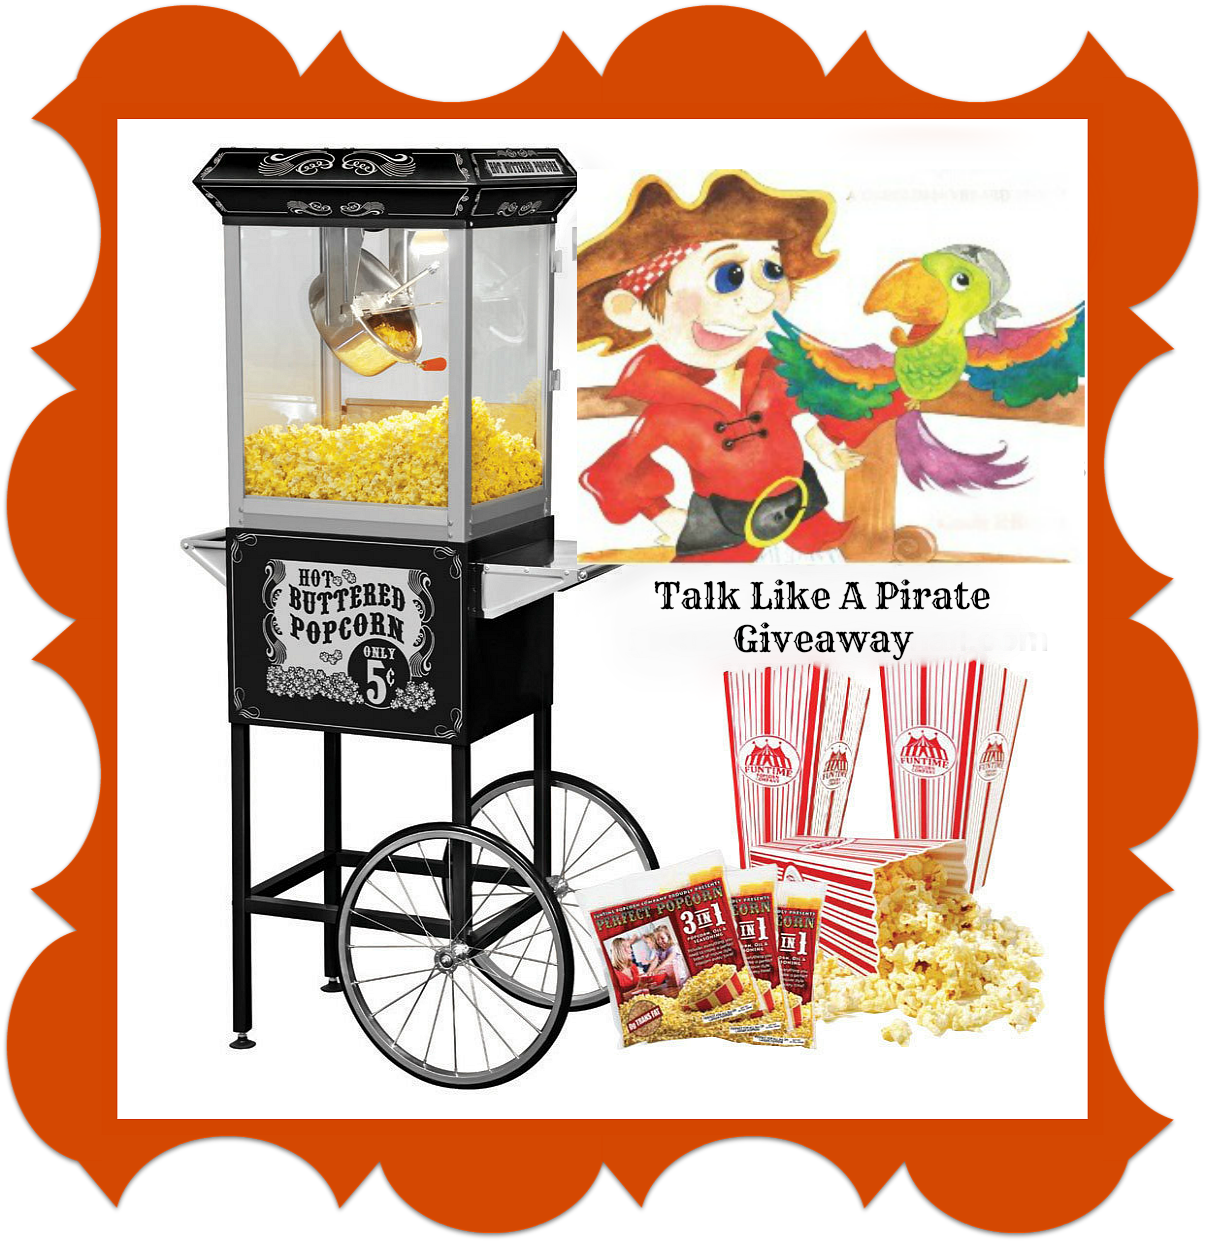 the talk com giveaway carole p roman celebrating talk like a pirate giveaway 705